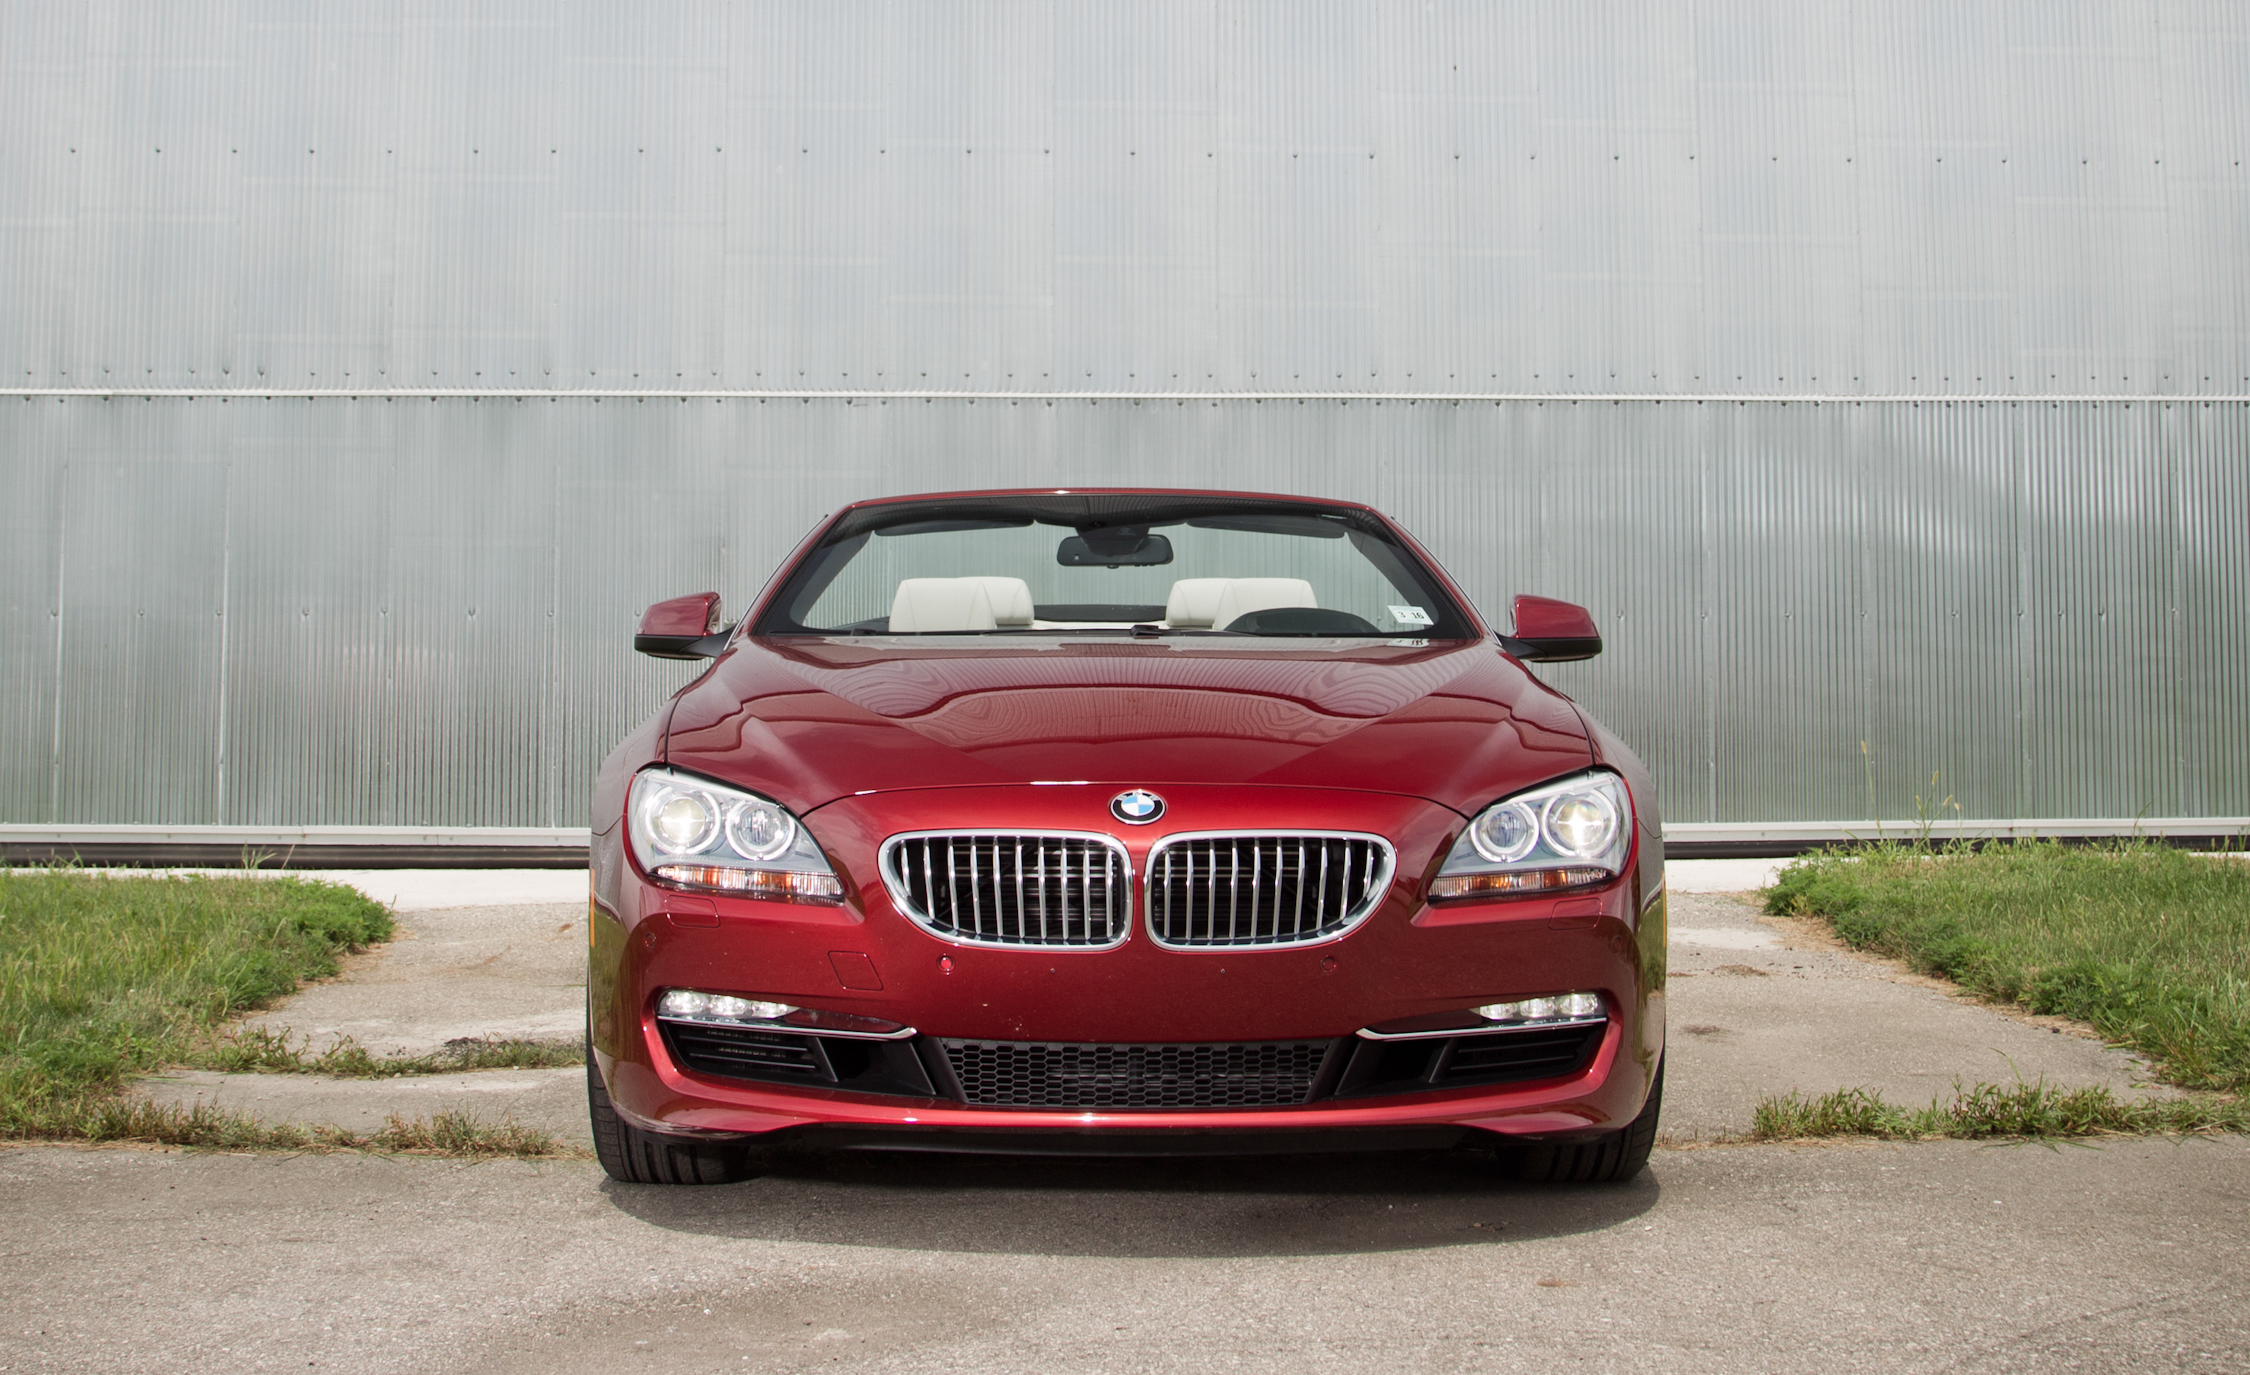 2012 BMW 650i Convertible Exterior Front (Photo 2 of 19)